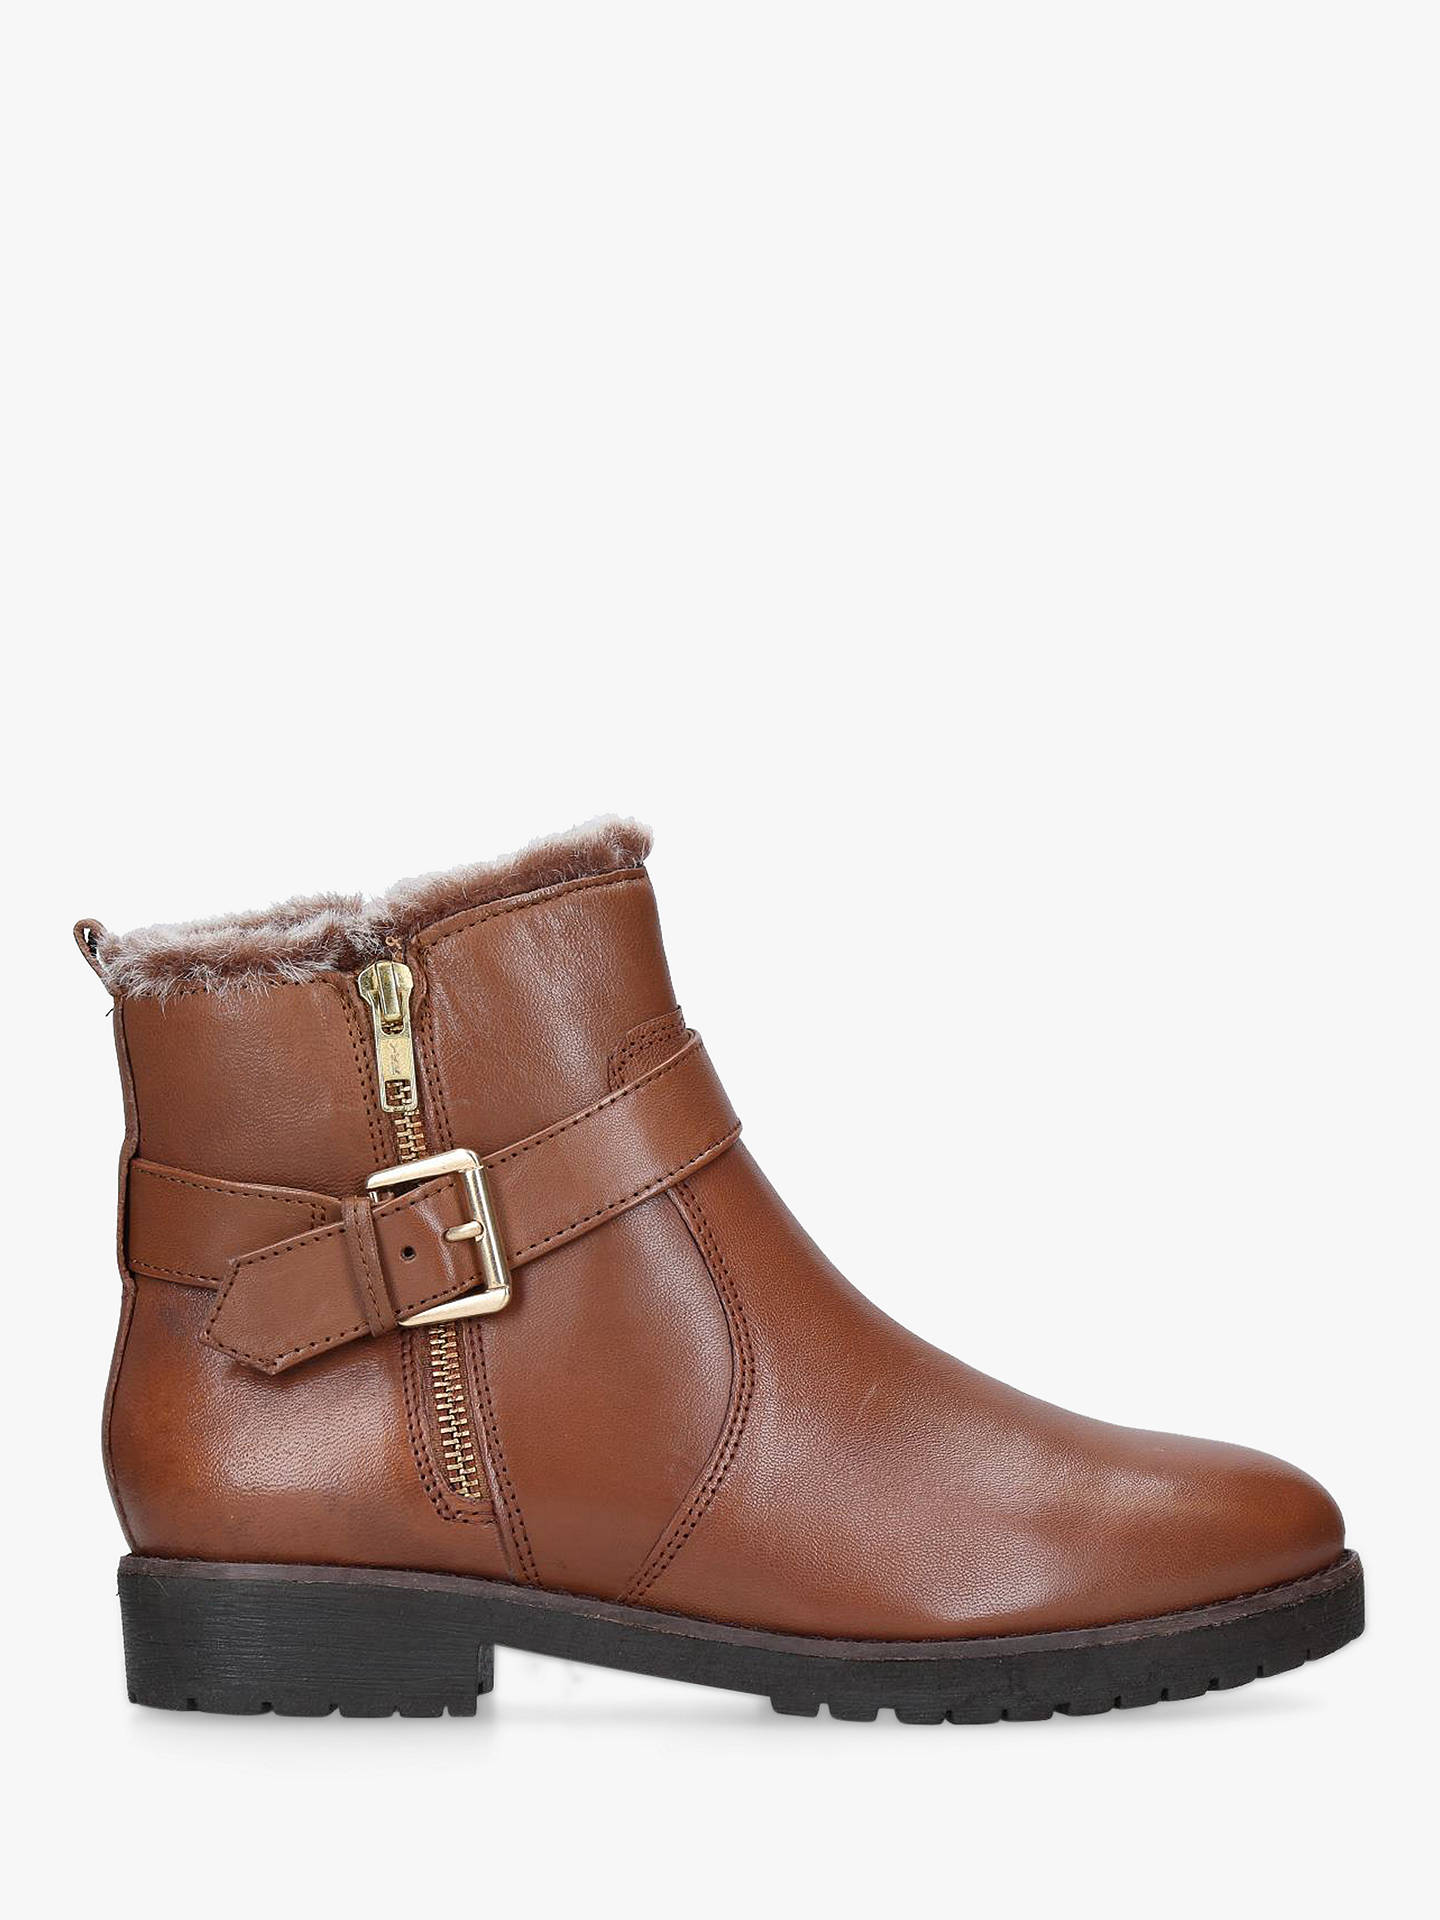 9fbb8ad2923 Carvela Scout Buckle Ankle Boots, Tan Leather at John Lewis & Partners